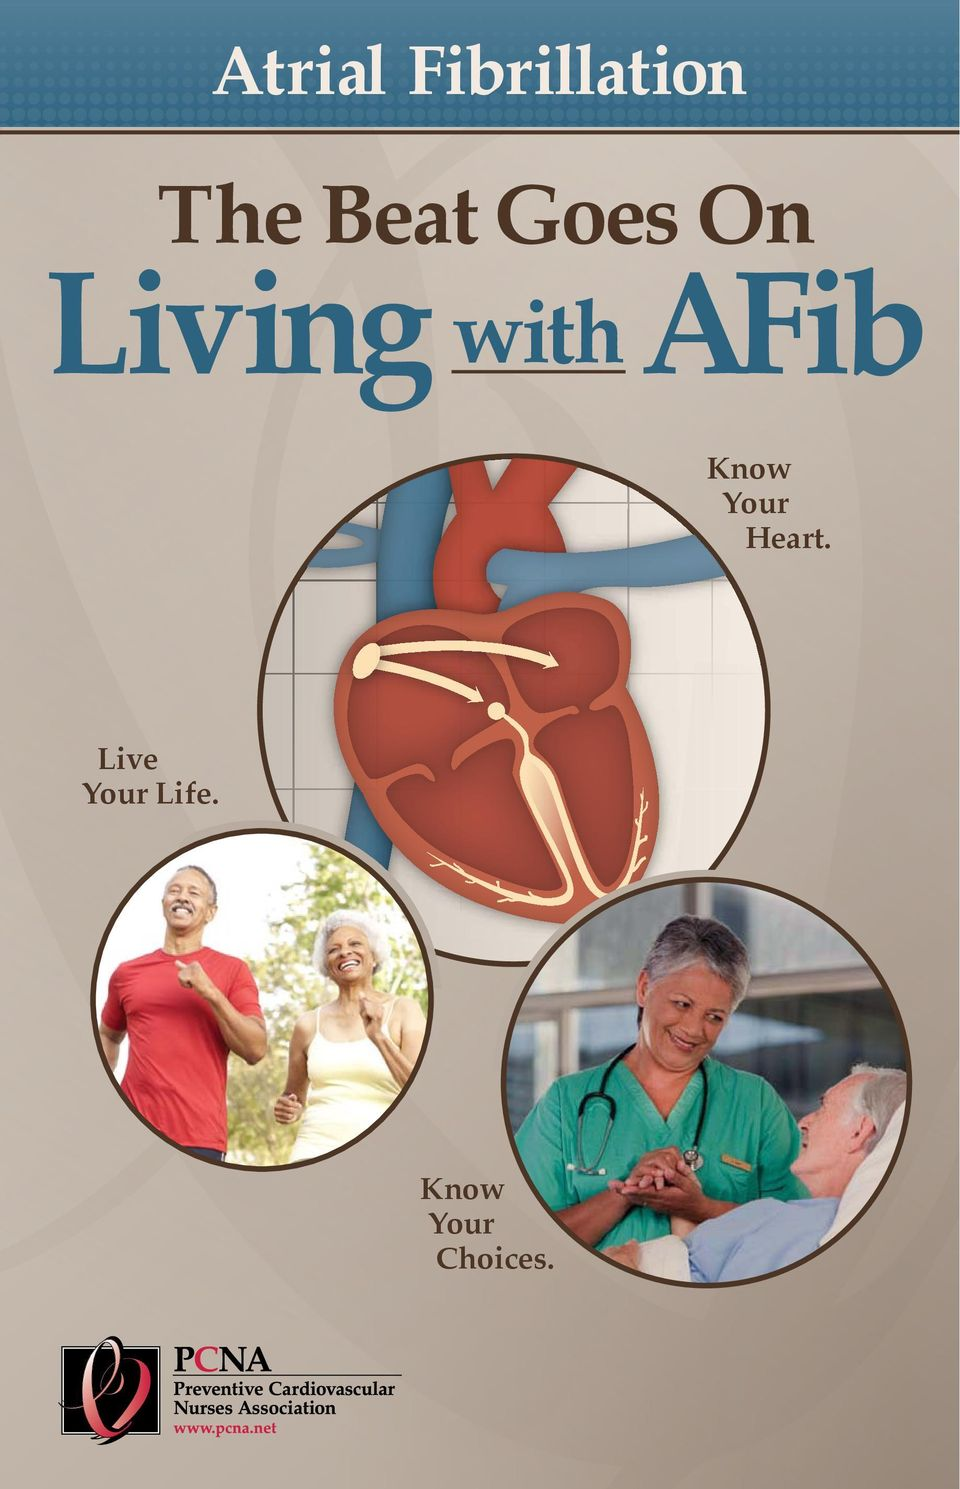 AFib Know Your Heart.